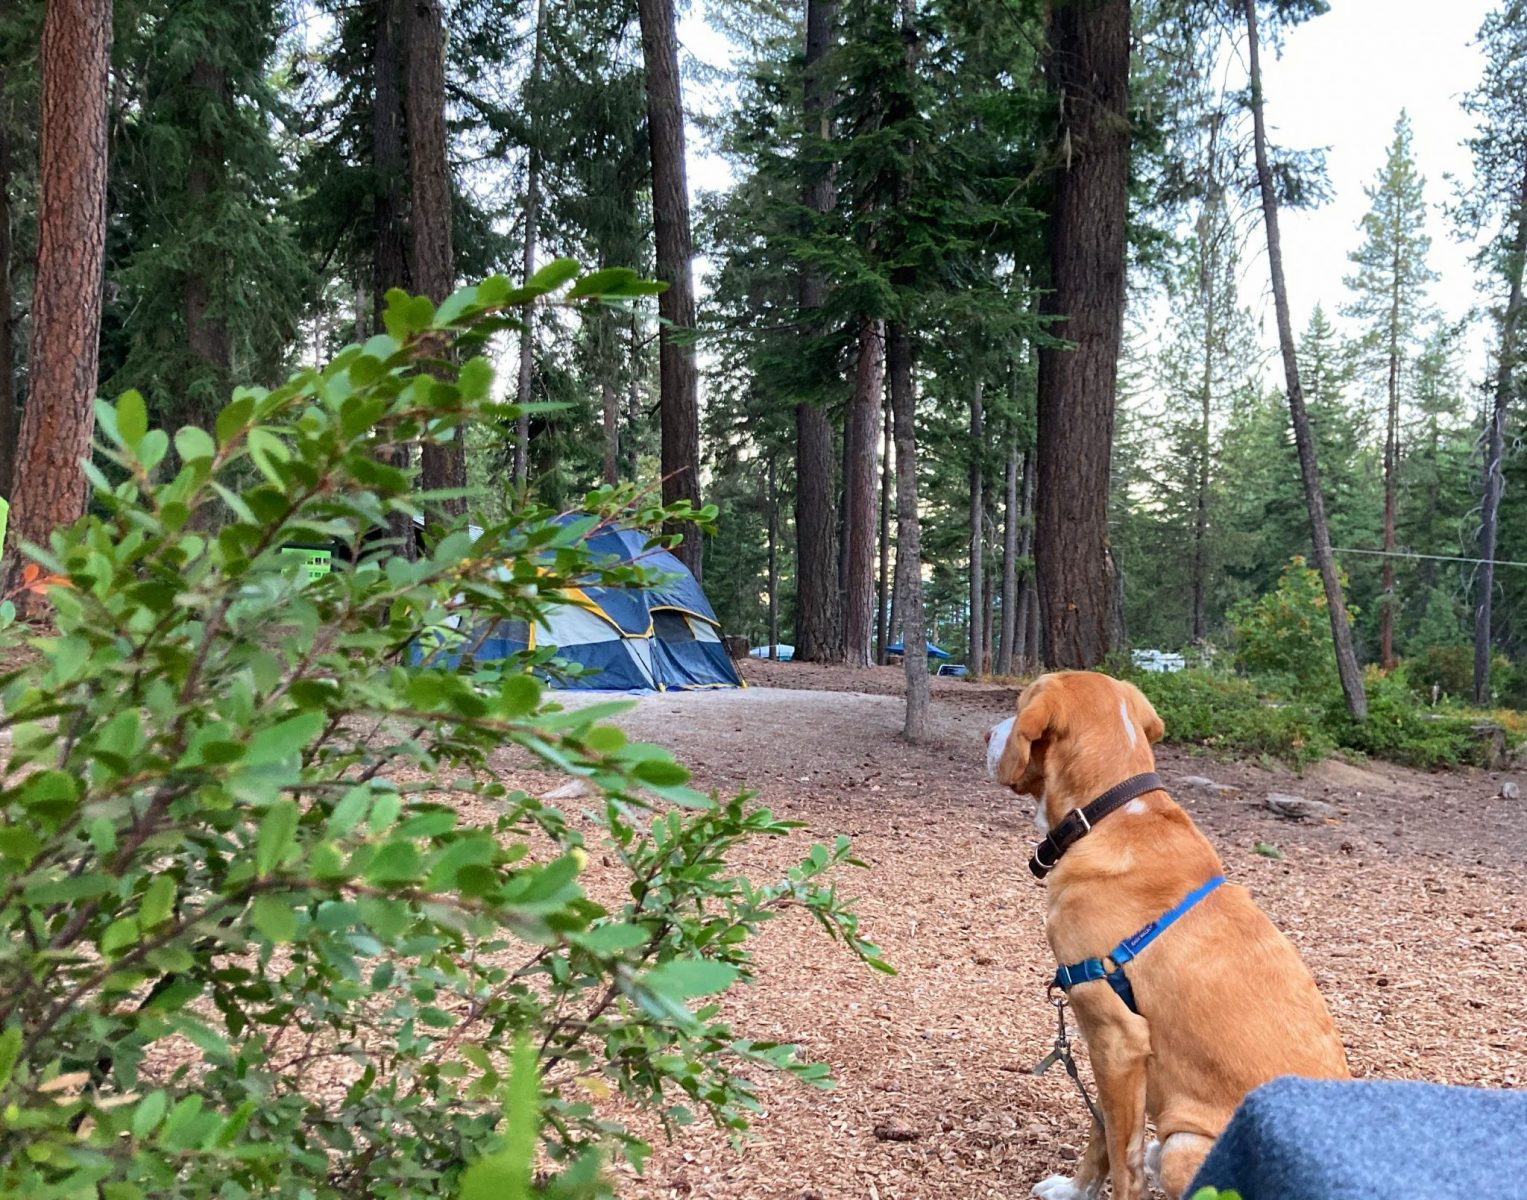 A dog on a leash and harness sitting in a campsite at Lake wenatchee state park. There are open gravel areas between the tall green trees. There is a blue, yellow and gray tent in the background